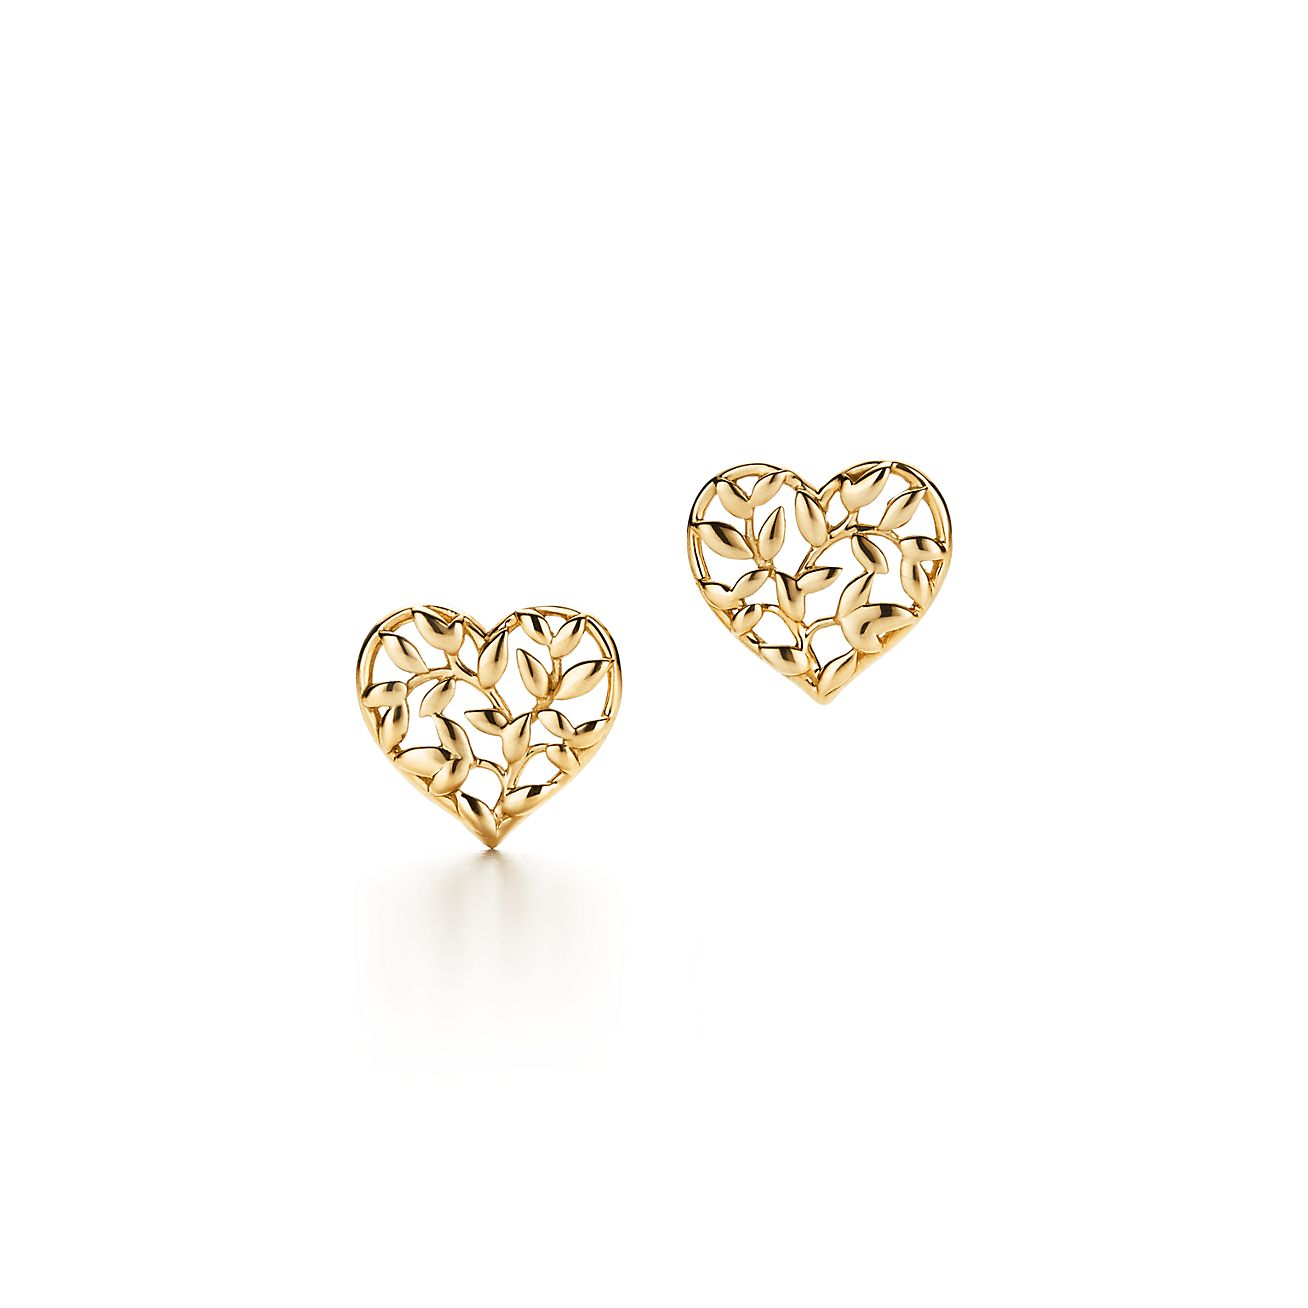 Paloma Picasso Olive Leaf earrings in 18k white gold with diamonds - Size Tiffany & Co.